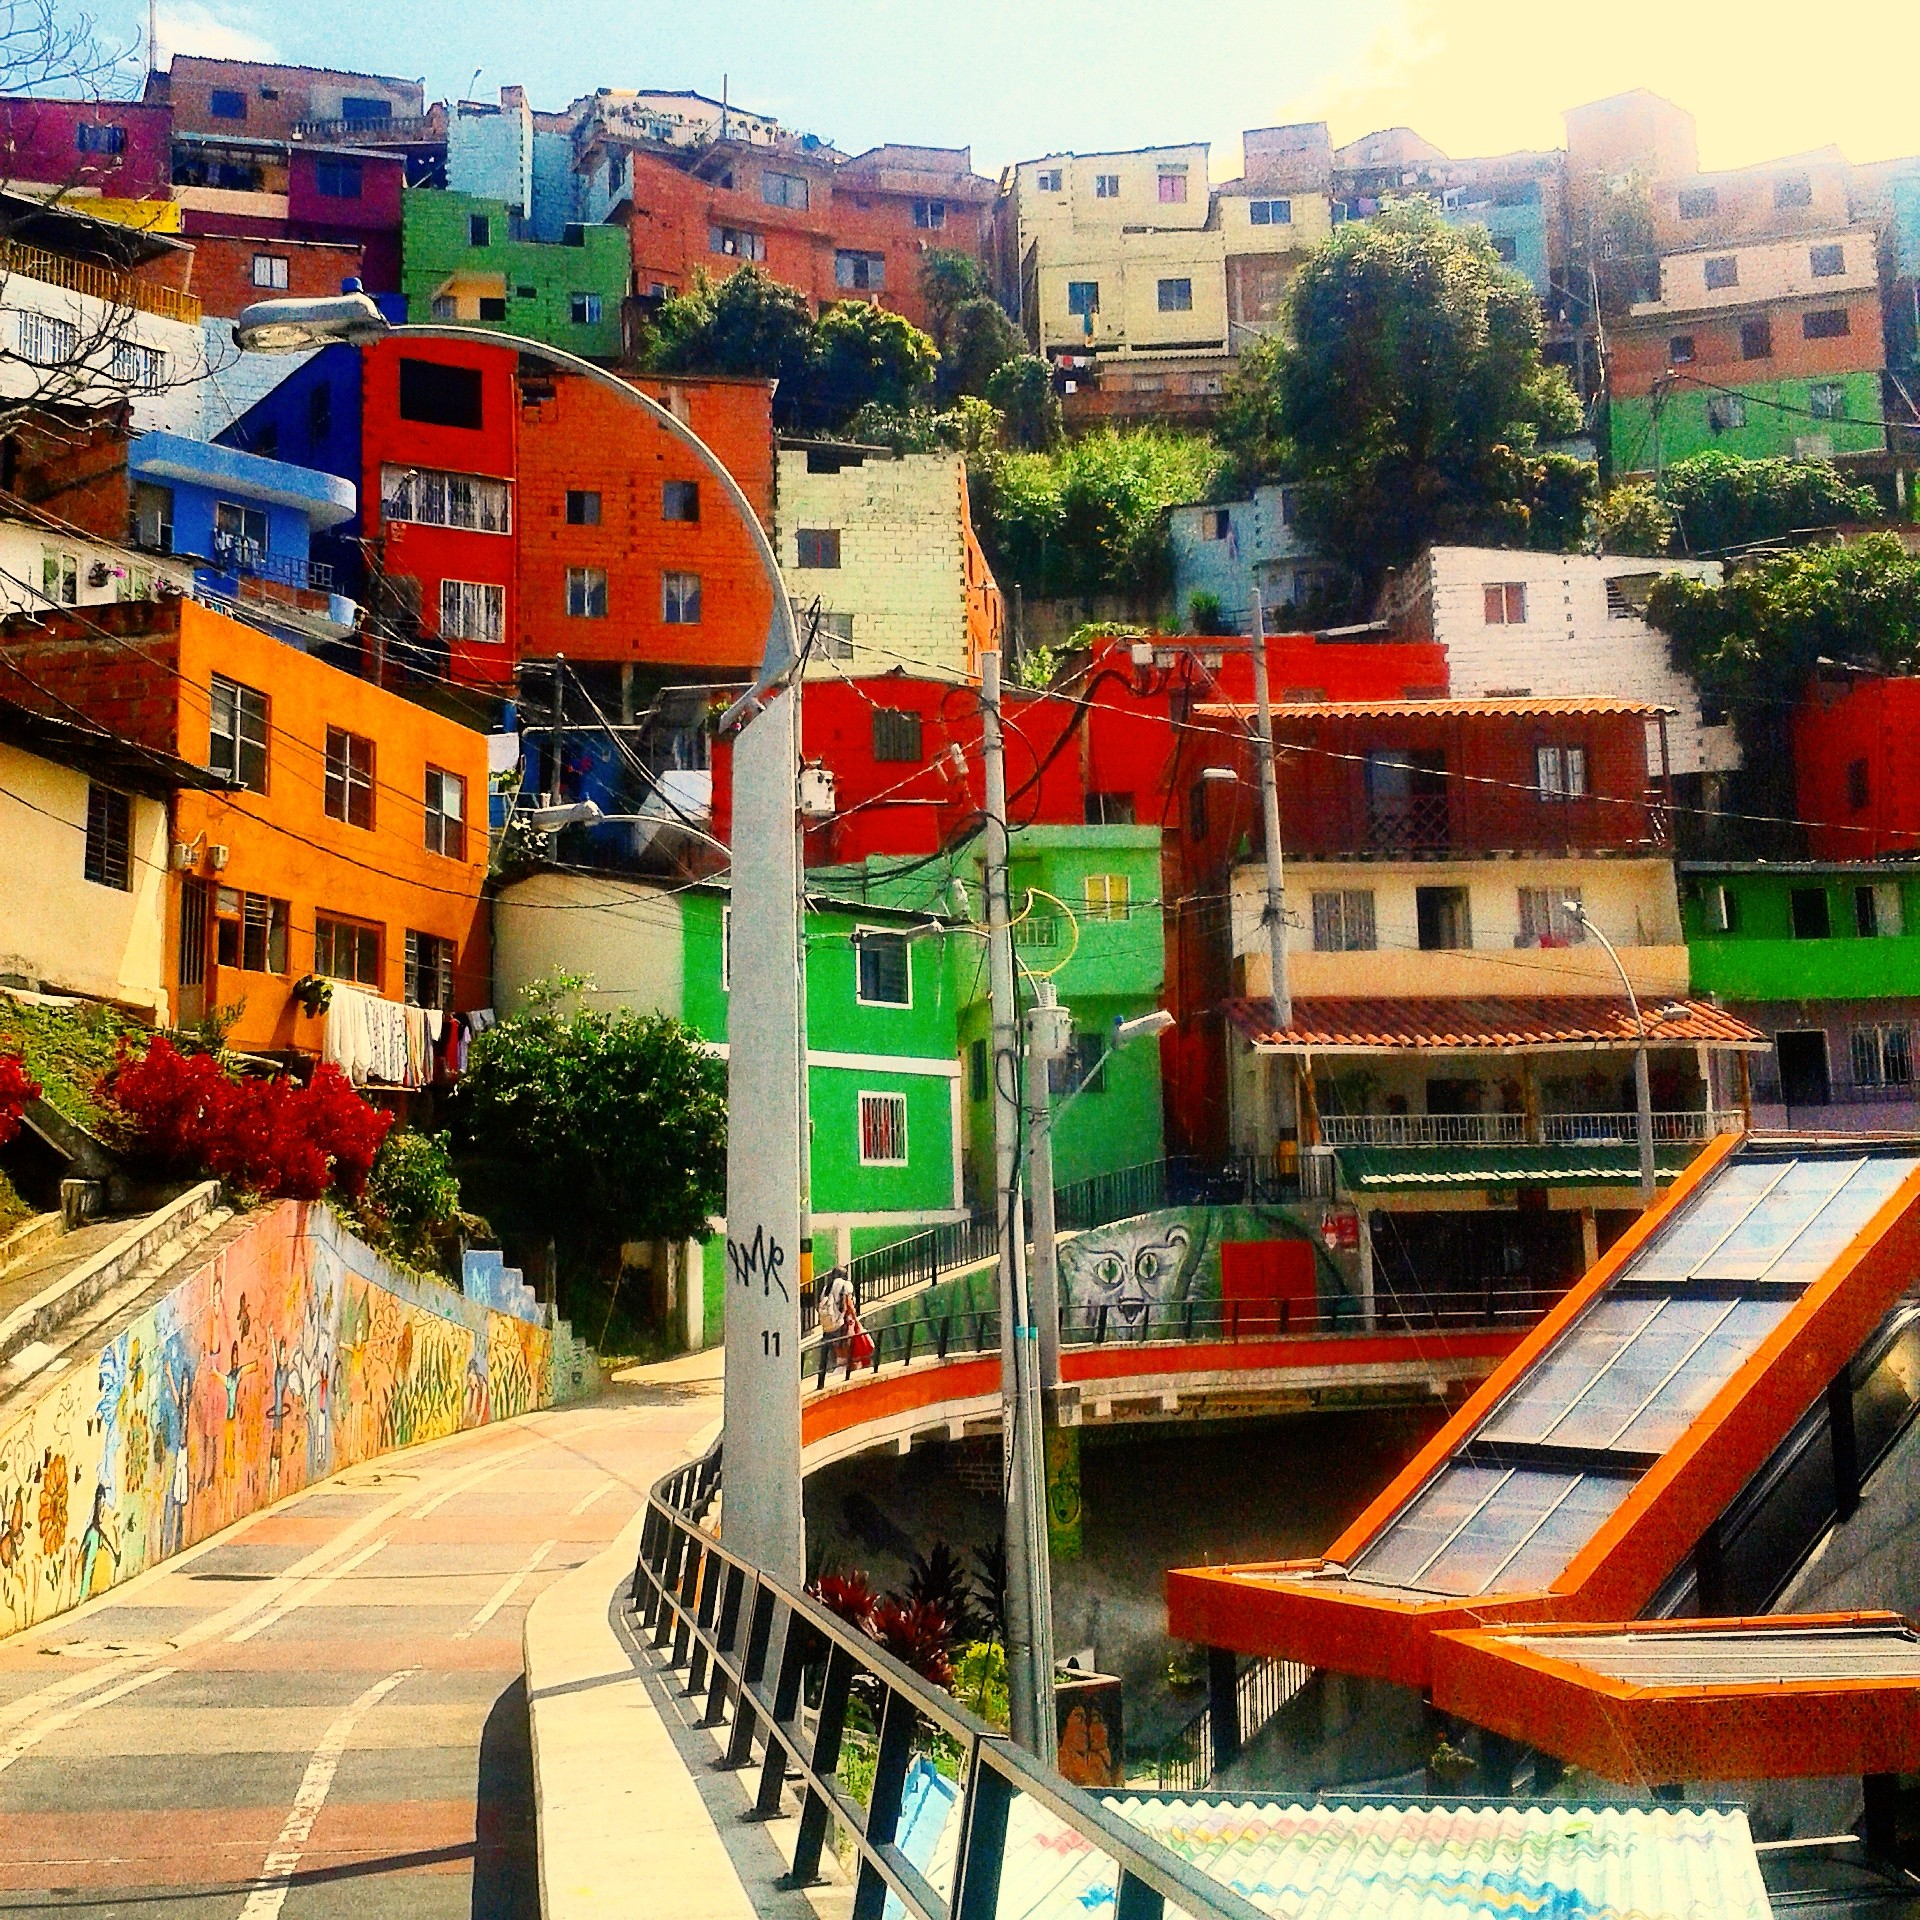 Comuna 13's Electric Escalators in Medellín, Colombia have to be seen.